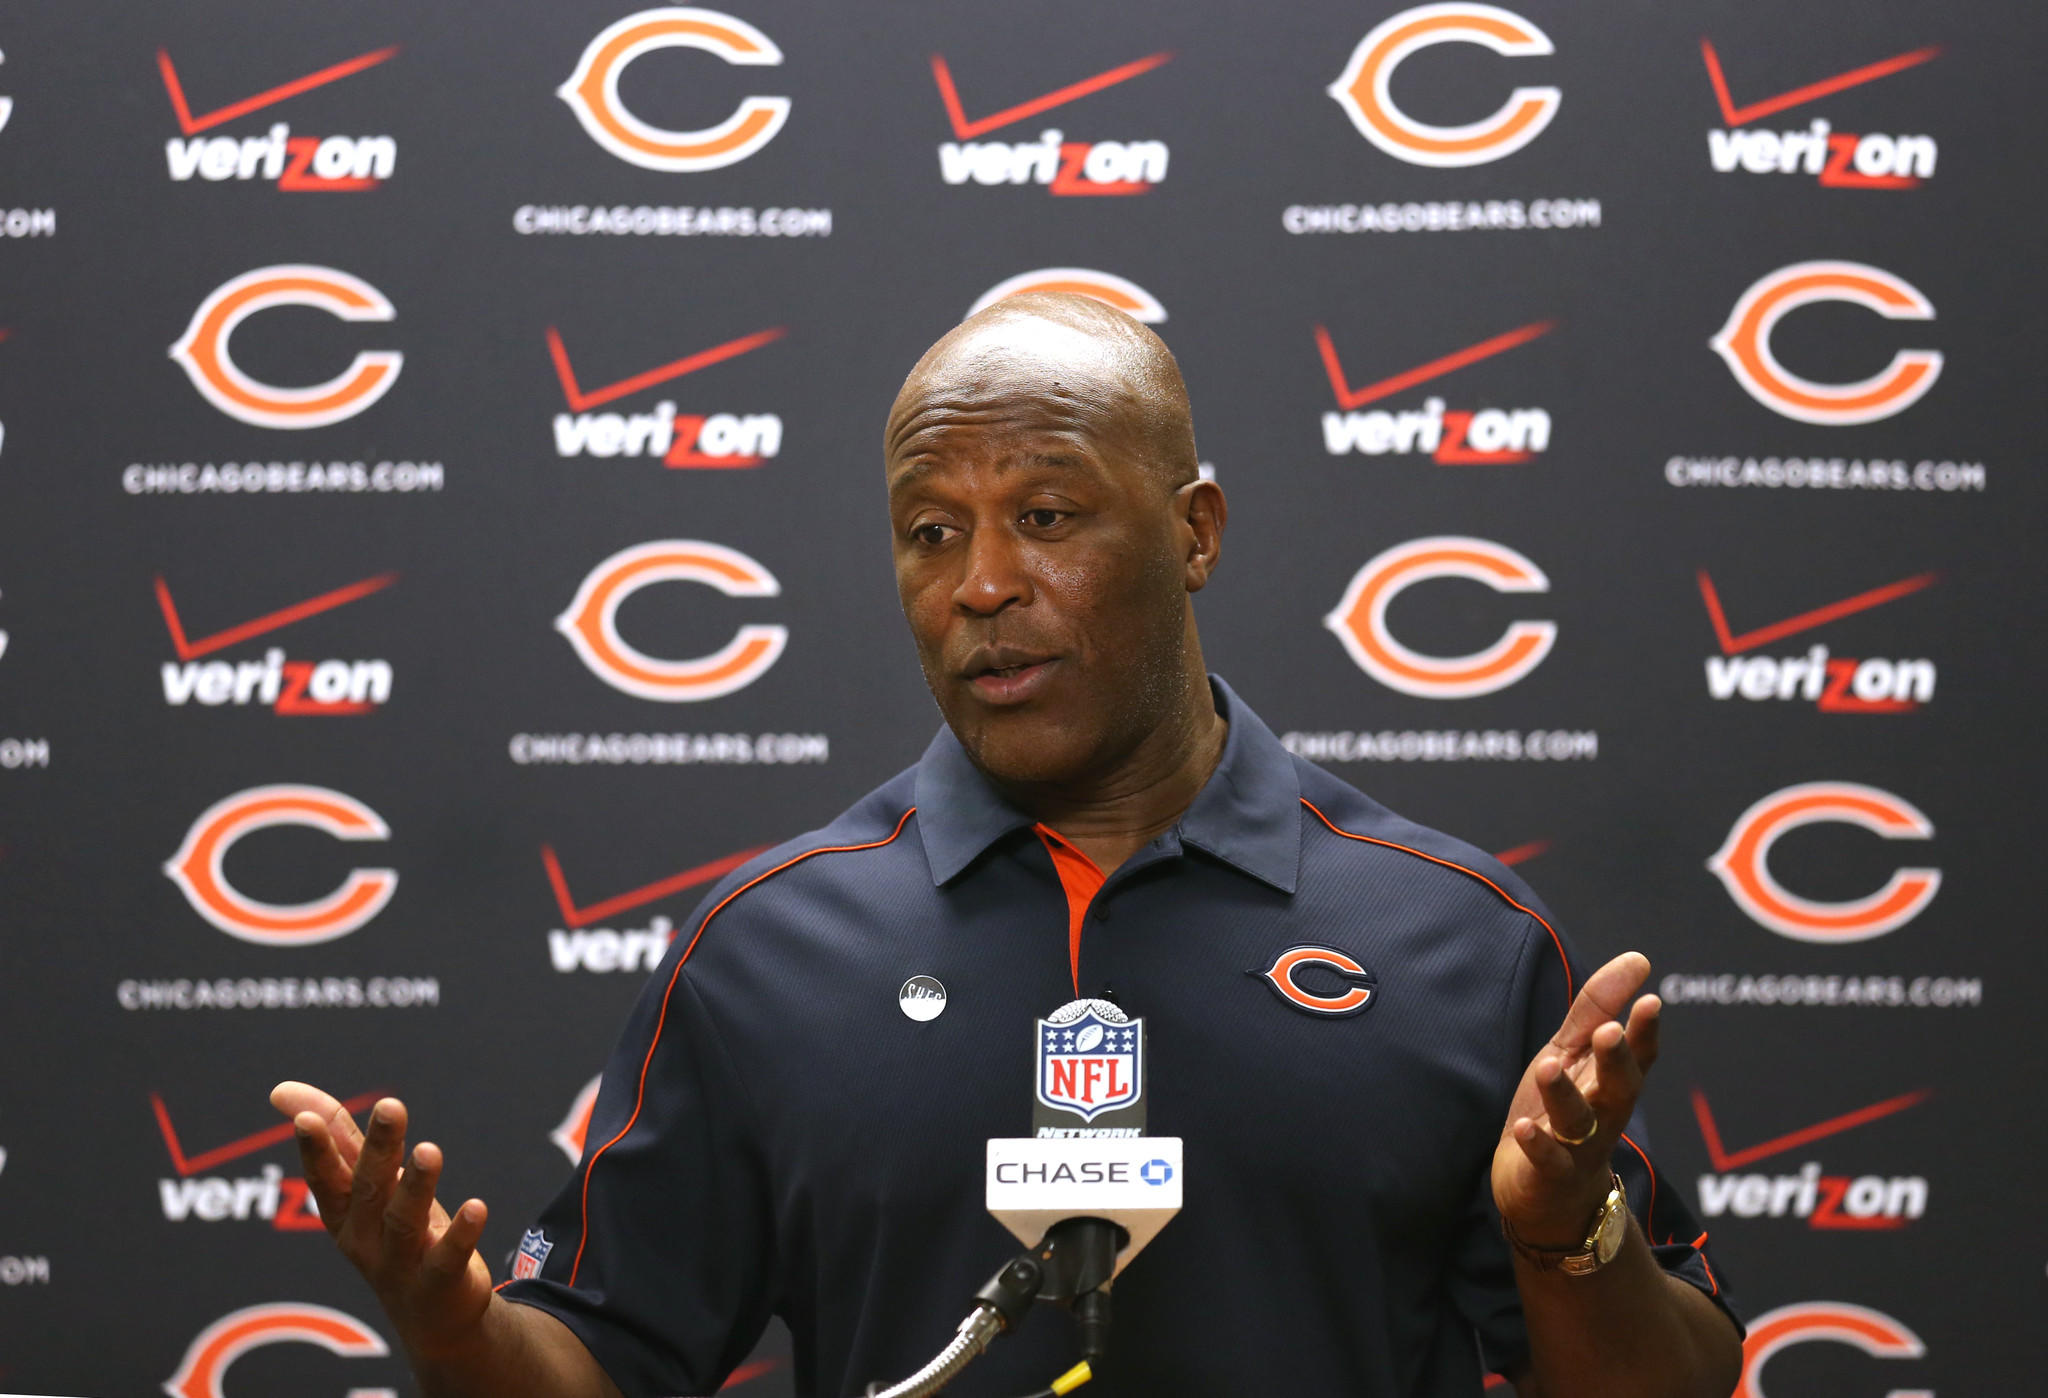 Former Bears coach Lovie Smith during a press conference.